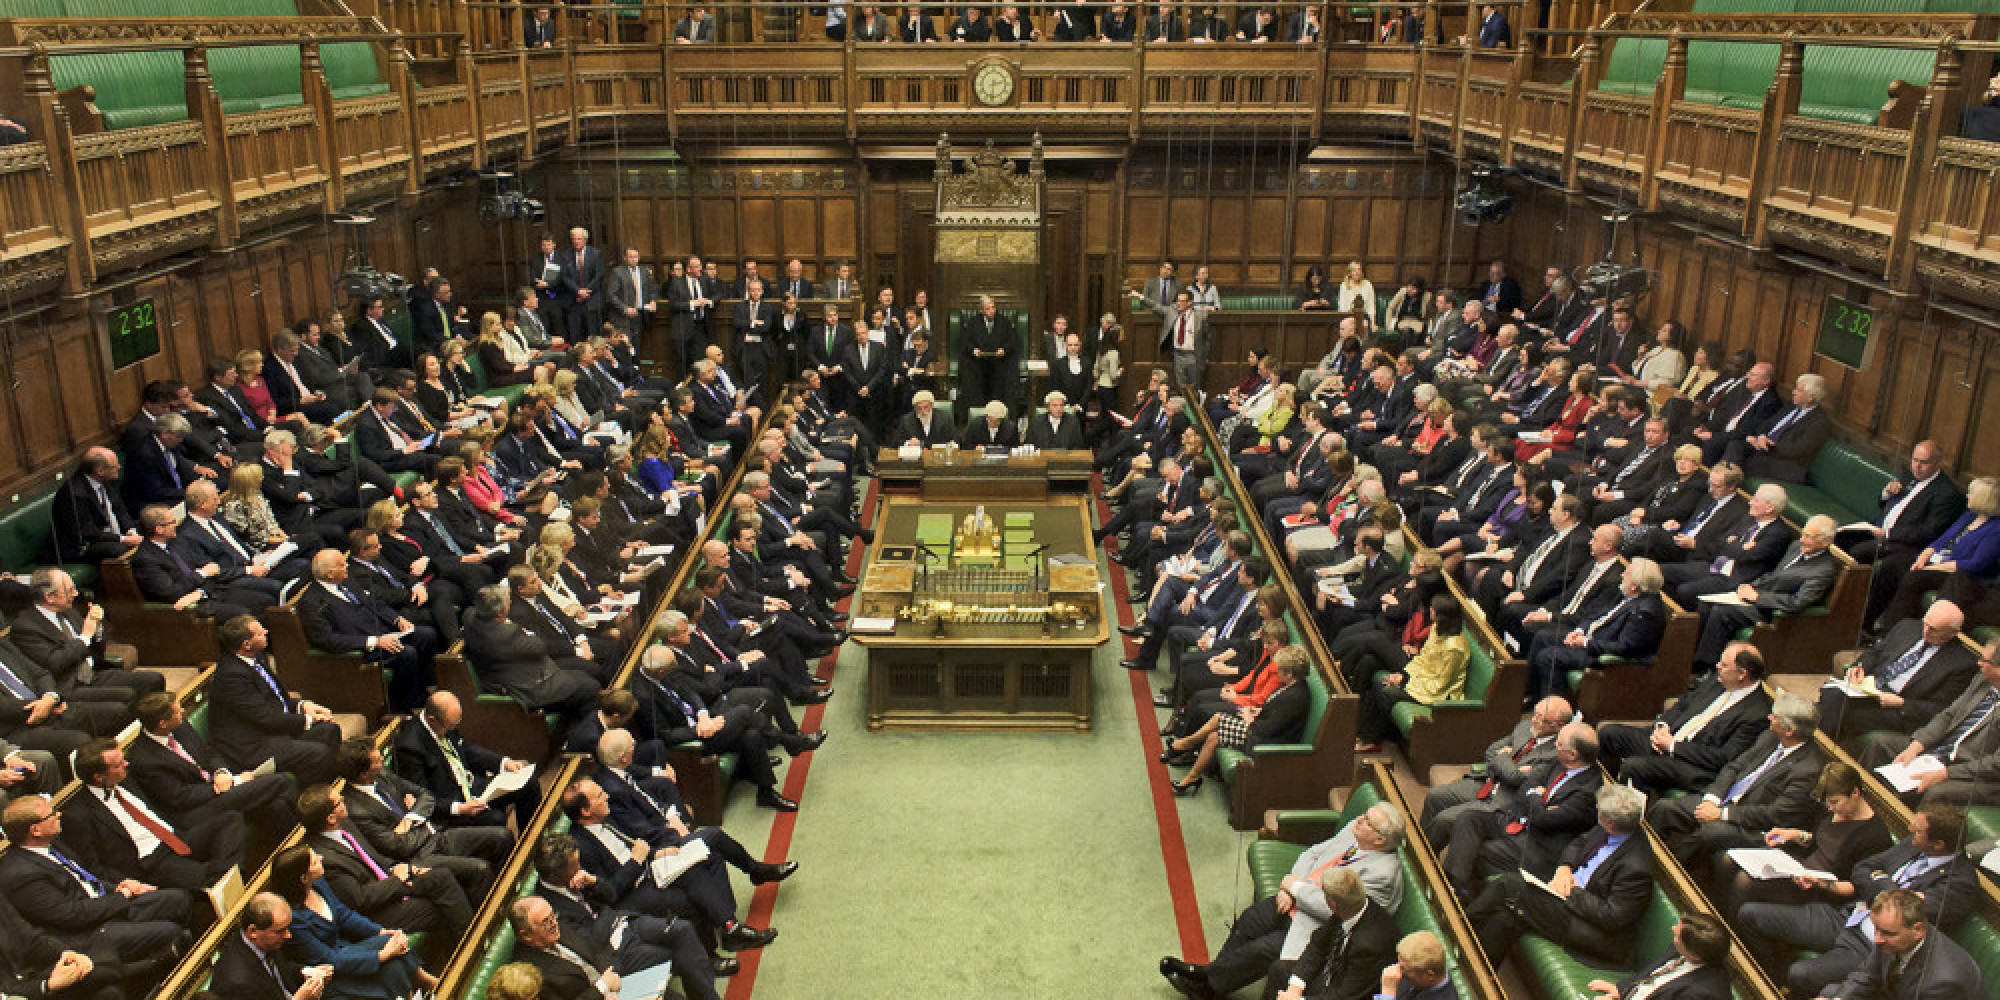 MPs To Get 10% Pay Rise, But Remember Were All In This Together hoc